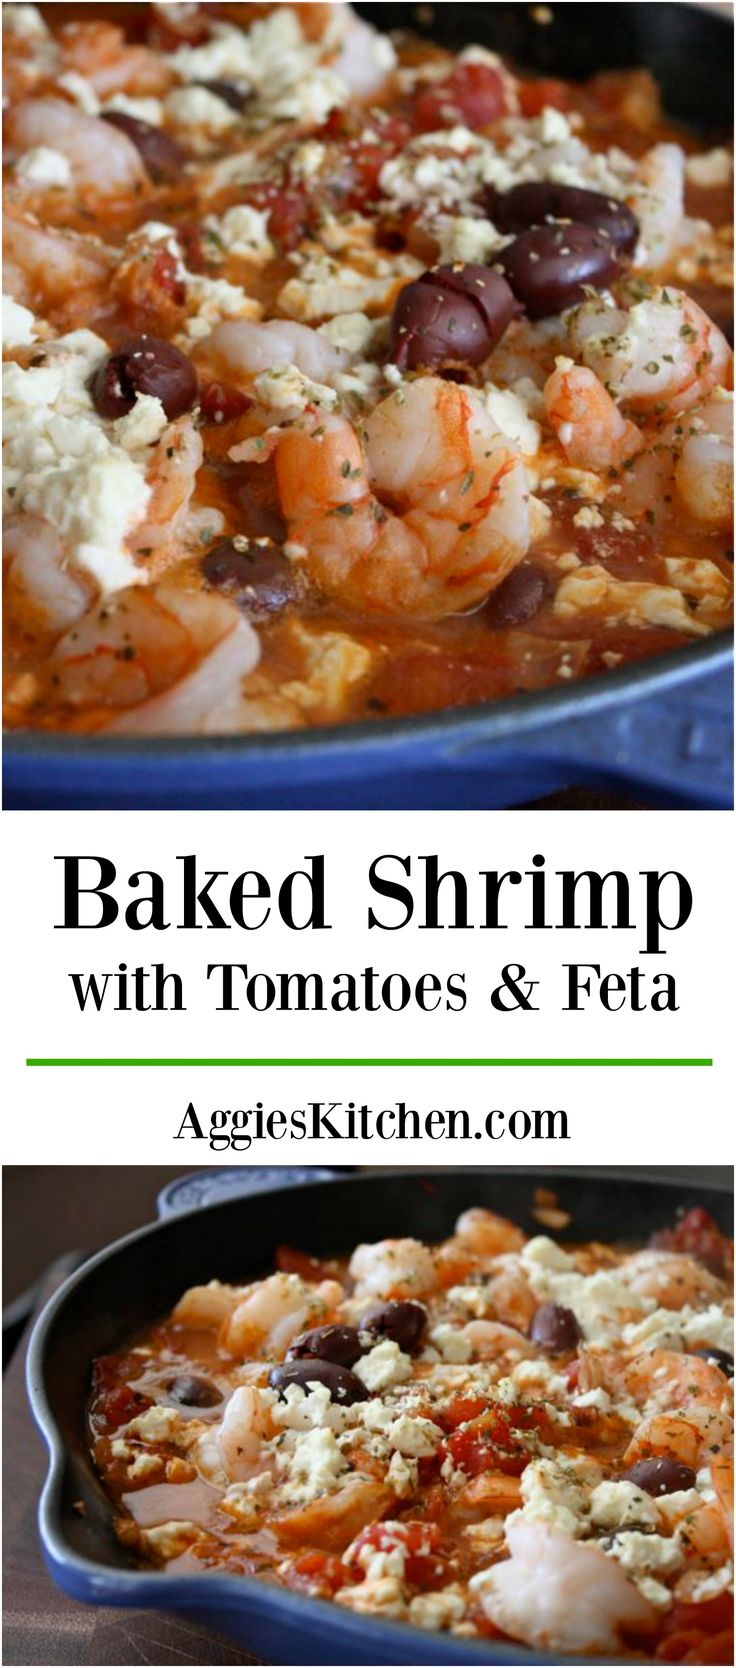 Take your seafood to a whole new level with this Ellie Krieger's Baked Shrimp with Tomatoes and Feta dish. A healthy one-pan meal perfect for weeknights! Recipe via aggieskitchen.com